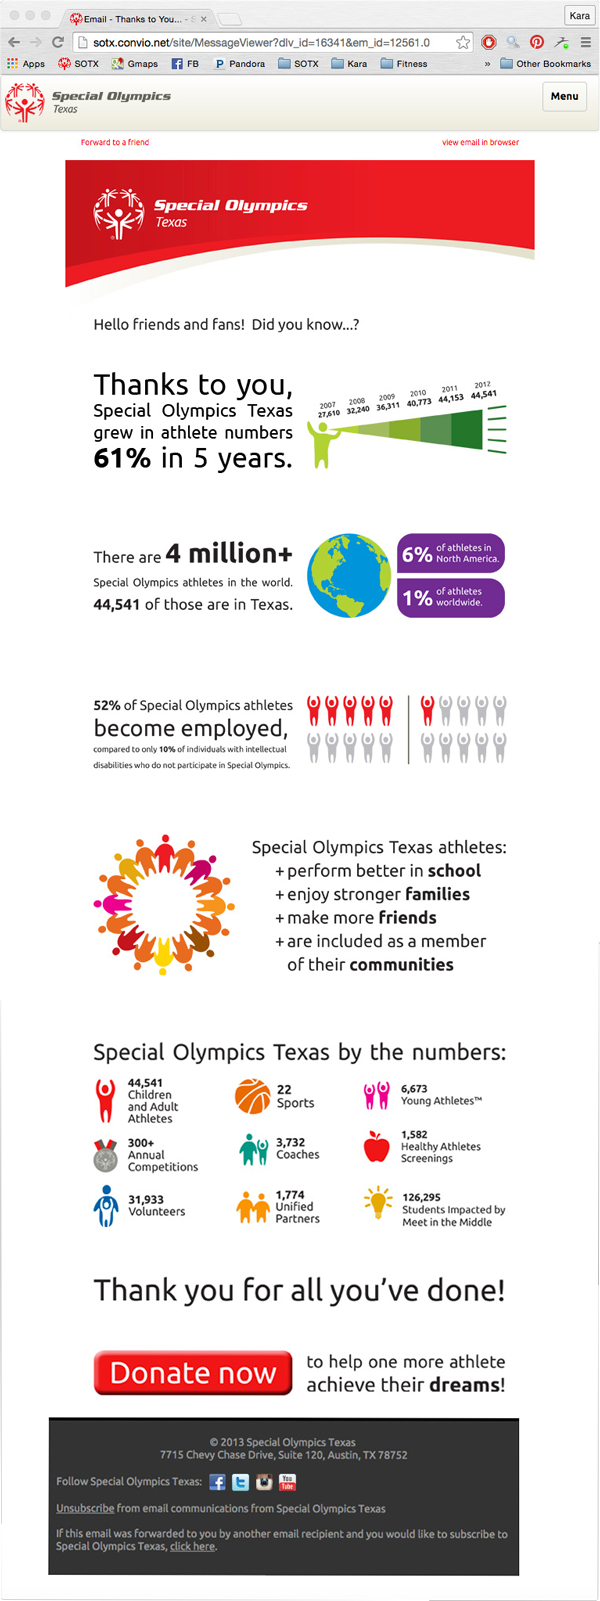 Special Olympics Texas Email Marketing by Kara Fuhlbrugge